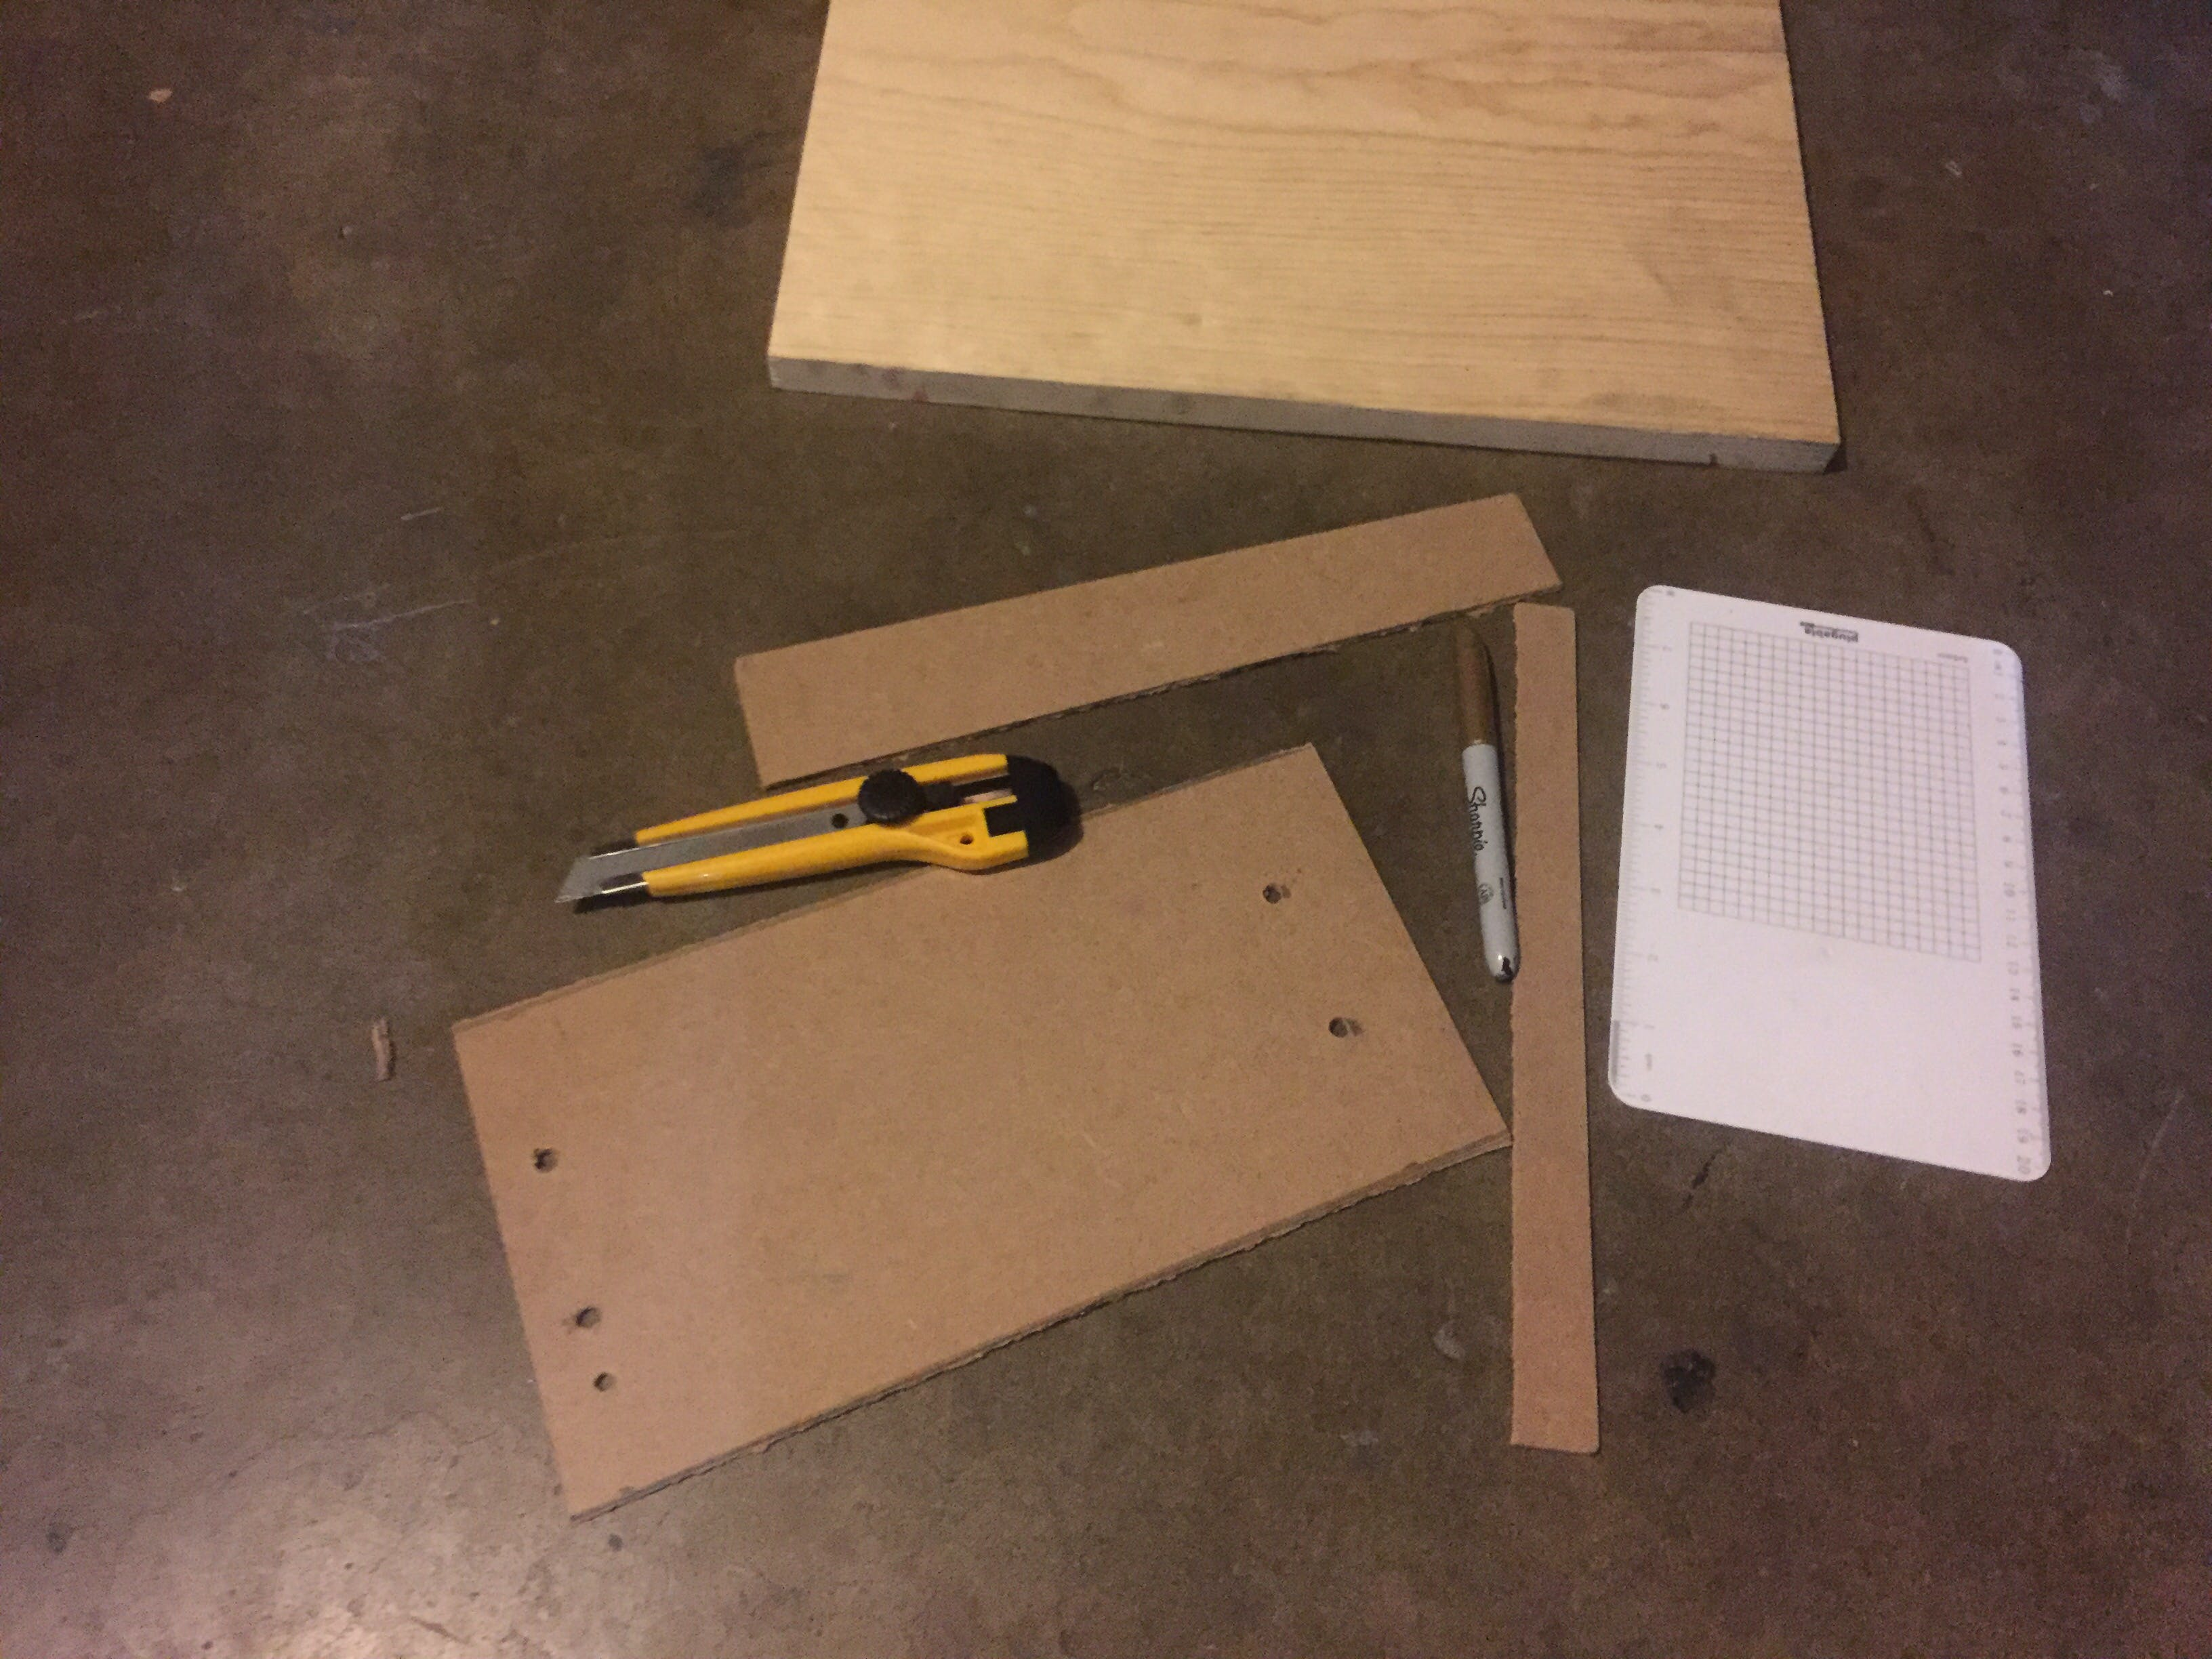 cut holes for supports and paint!